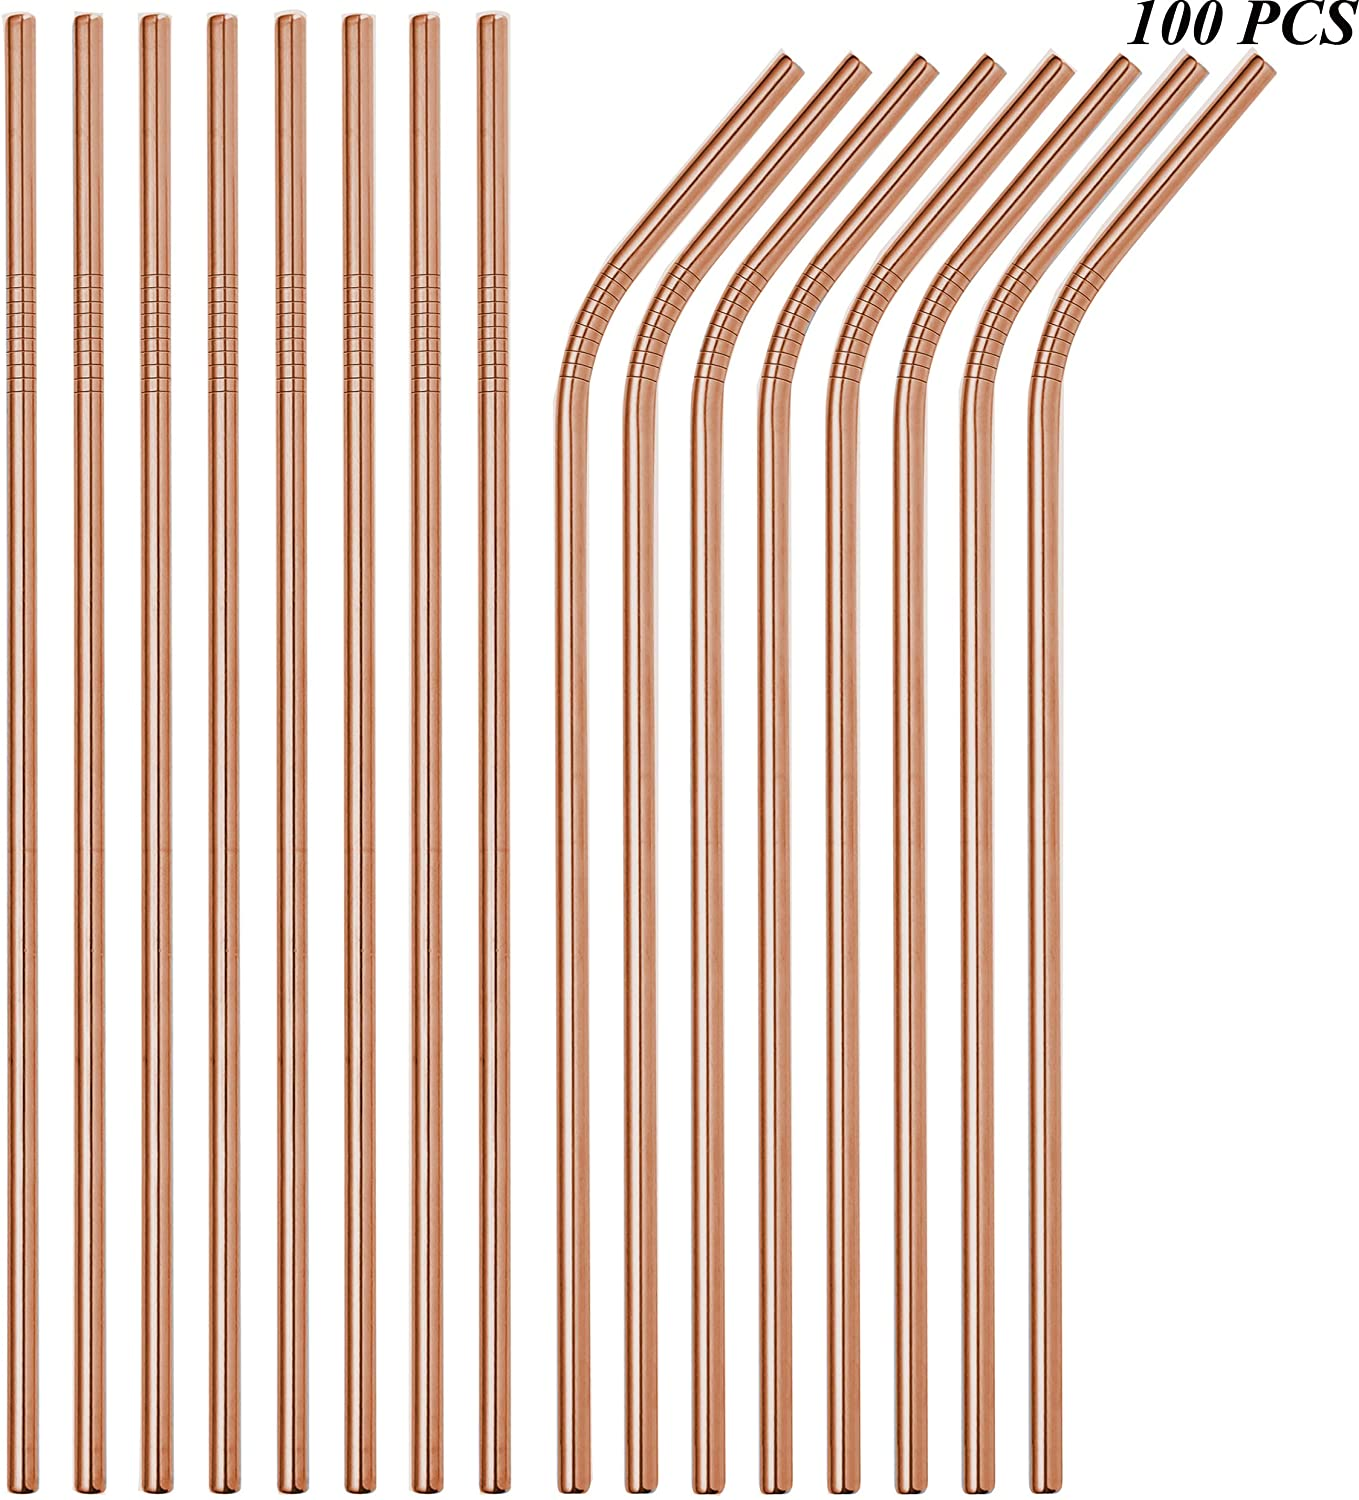 Reusable Metal Straws 100 Pieces,8.5''10.5'' Stainless Steel Rose Gold Straws for 20oz 30oz Tumbler Yeti,6mm Diameter Drinking Straws Bulk For Wholesale(50 Straight+50 Bent) (100pcs Rose Gold-10.5